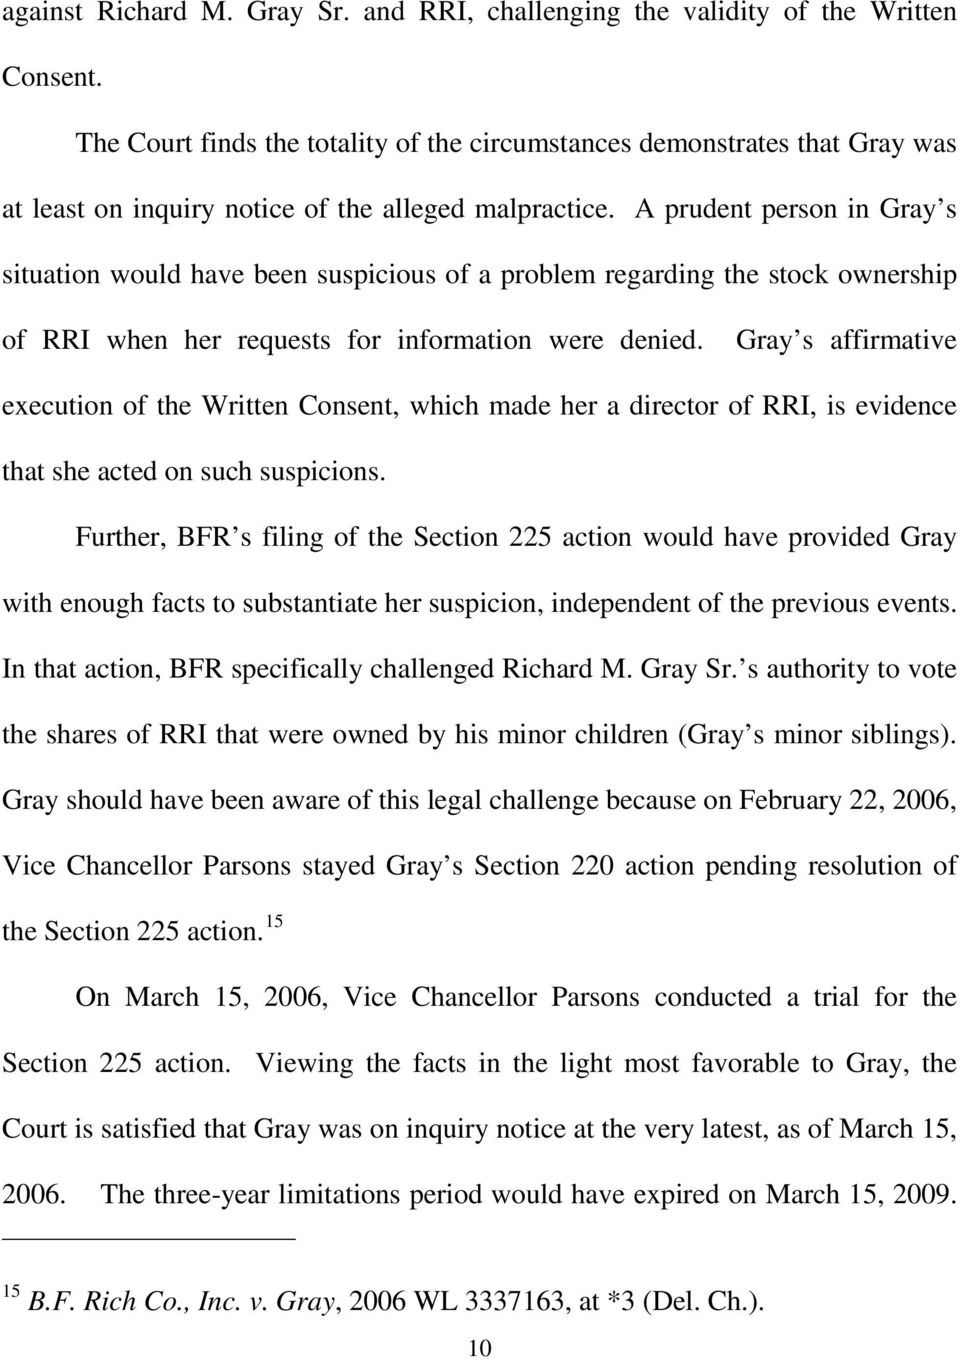 A prudent person in Gray s situation would have been suspicious of a problem regarding the stock ownership of RRI when her requests for information were denied.